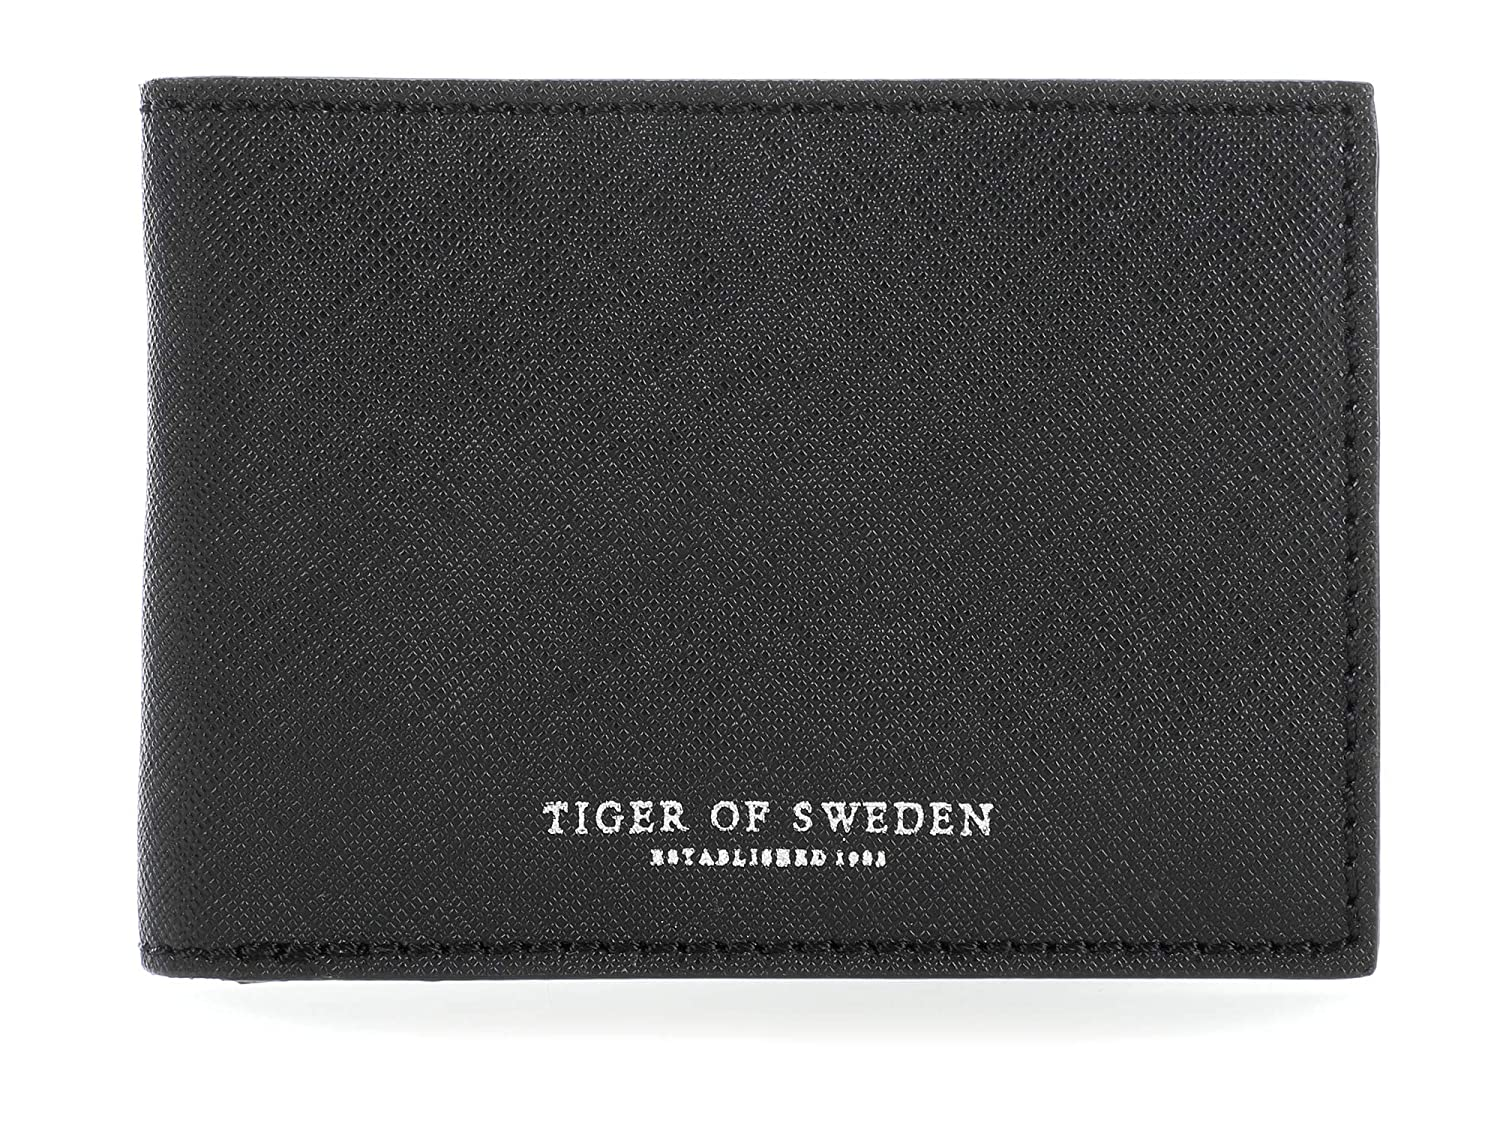 Tiger of Sweden Agata 2 Monedero Negro: Amazon.es: Equipaje